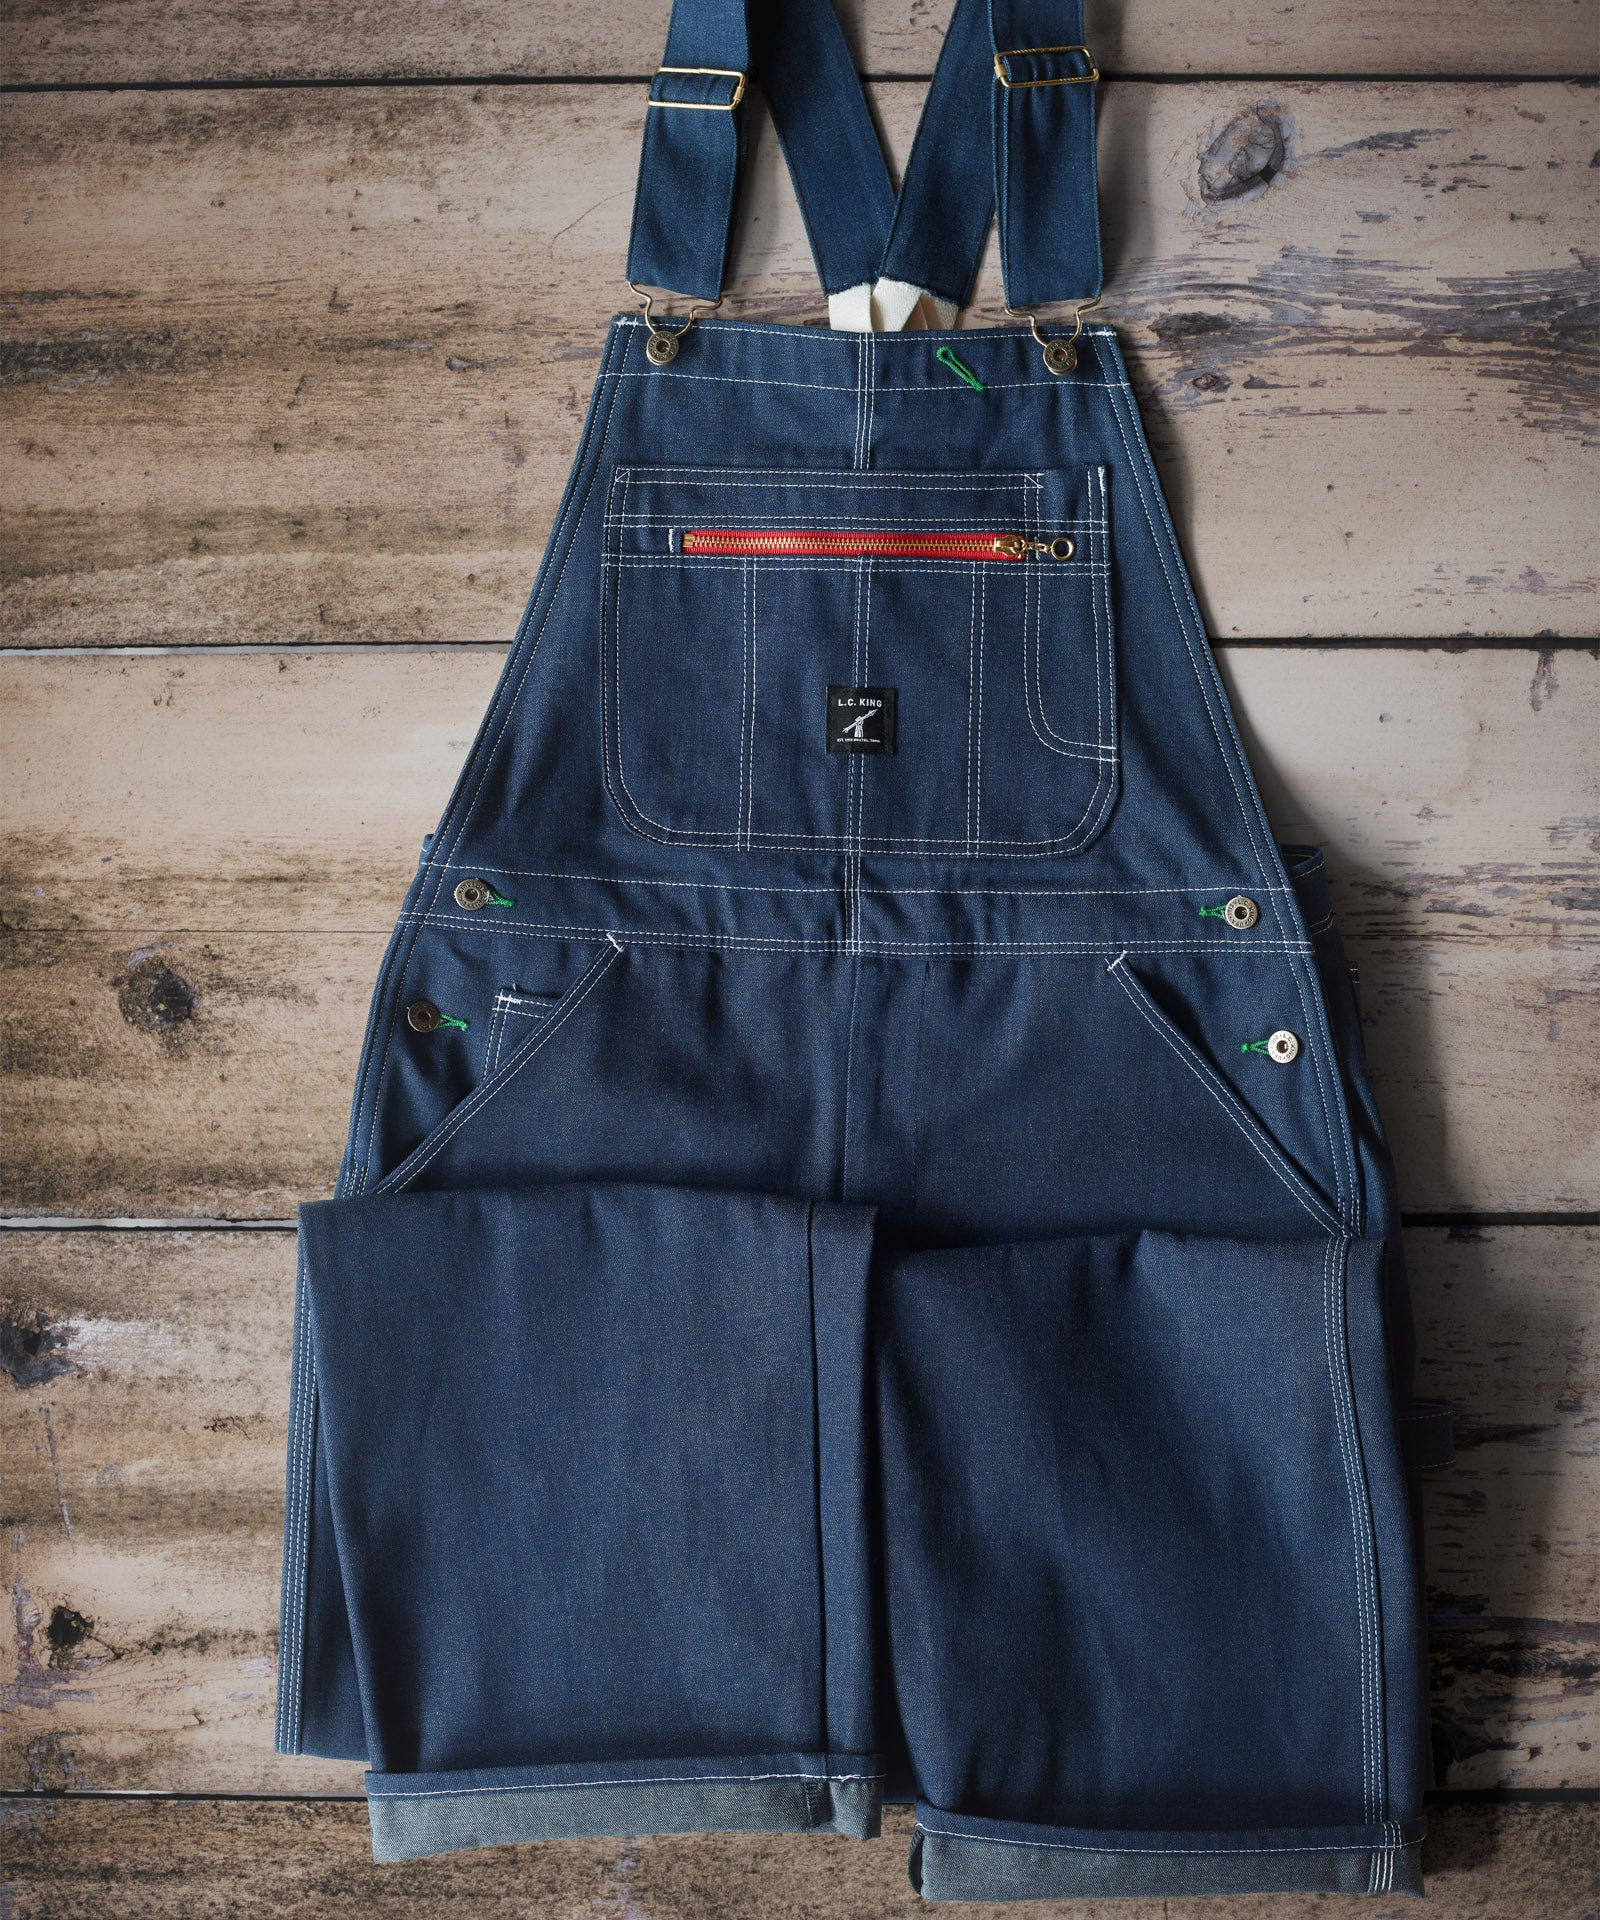 LC King Indigo Denim Low Back Overalls - Full Cut